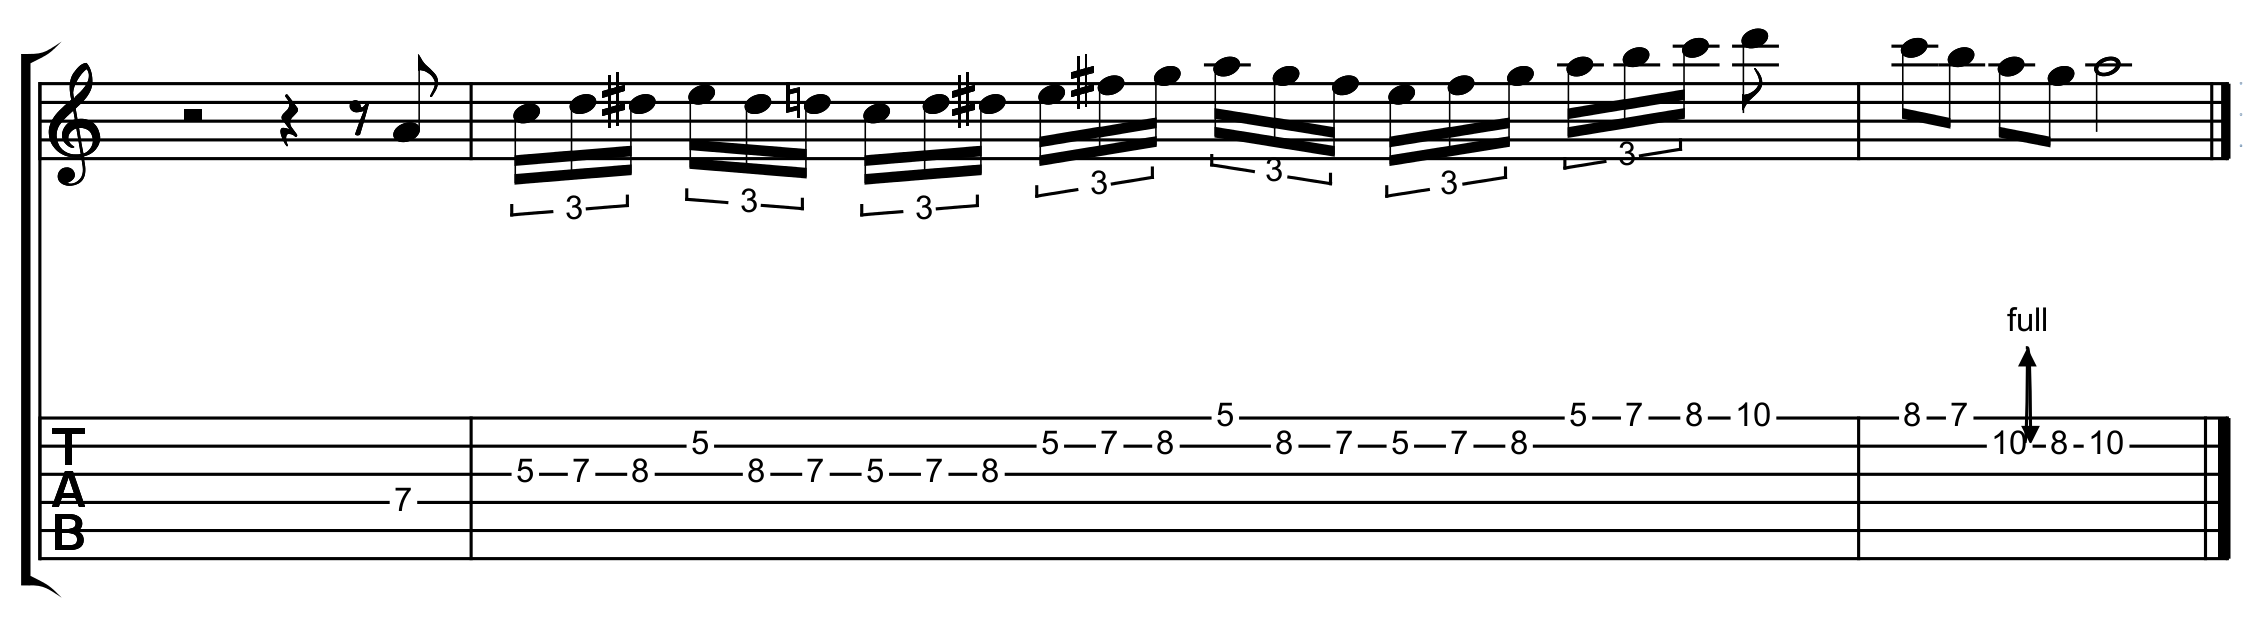 the pentatonic box shape lick transposed to the key of A minor